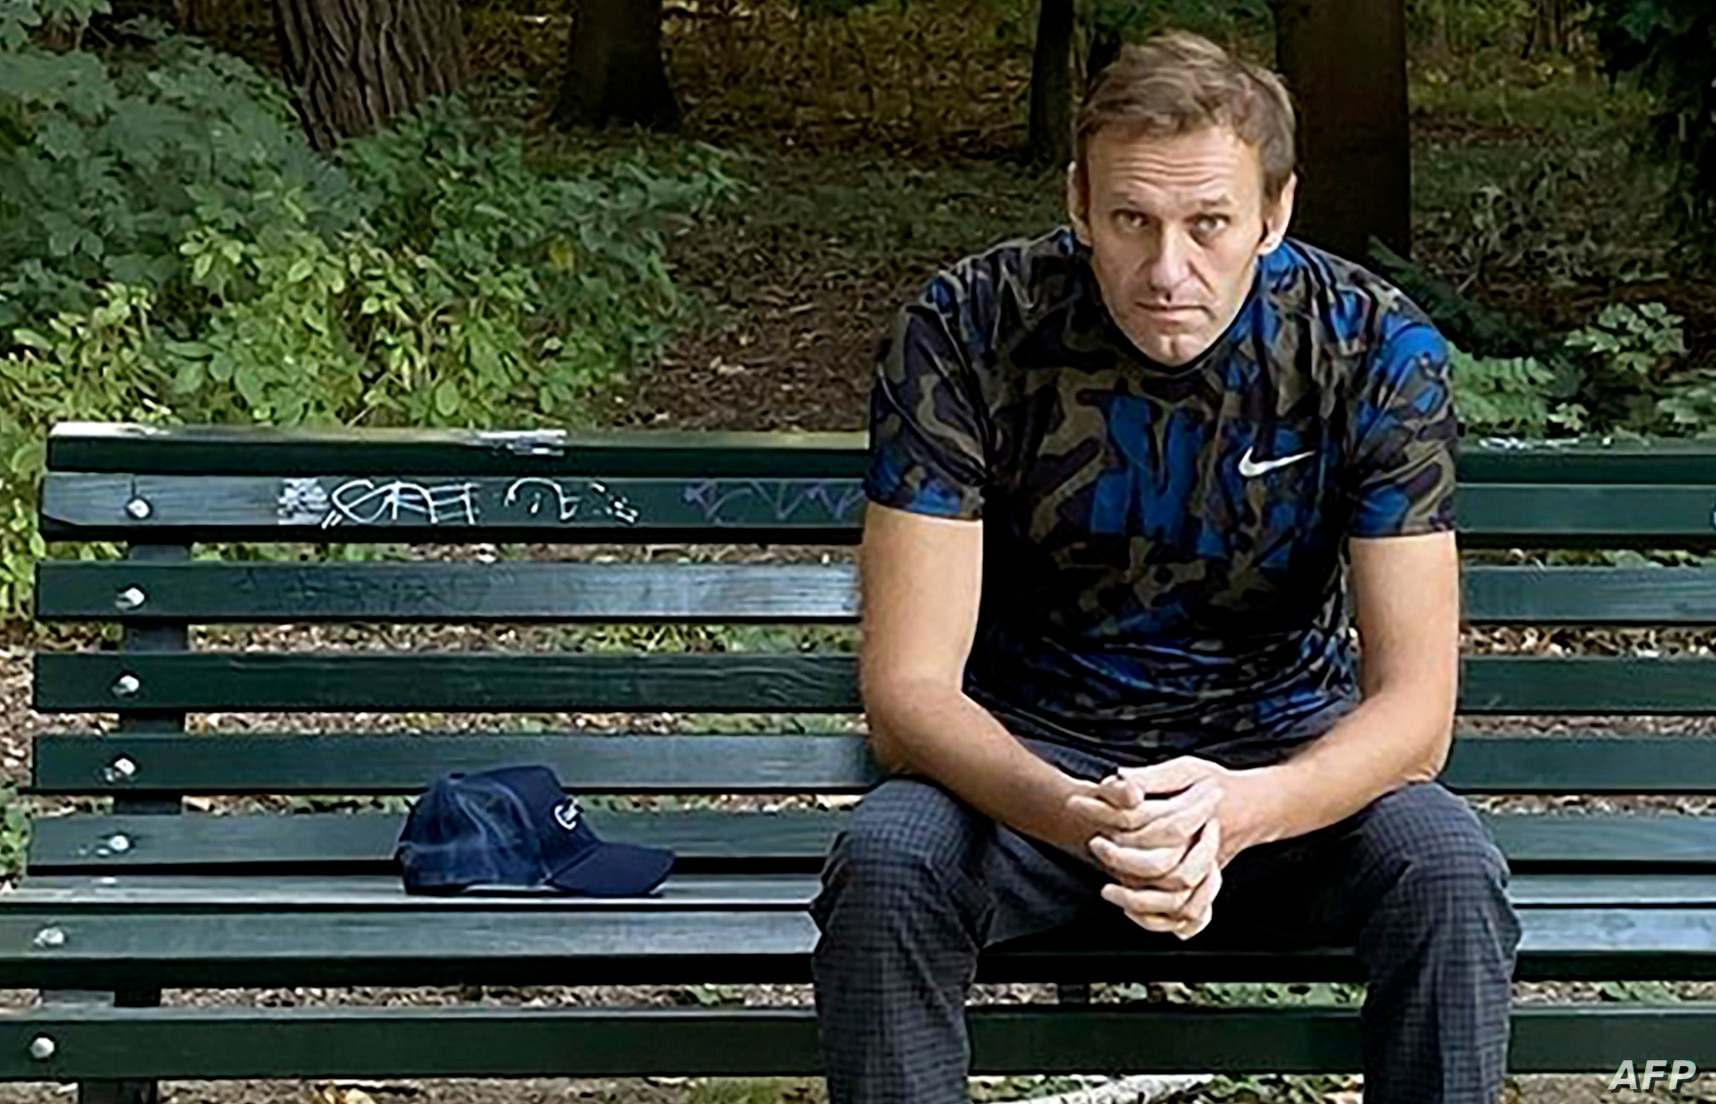 2020 on the Instagram account of @navalny shows Russian opposition activist Alexei Navalny sitting on a bench in Berlin as he was recuperating from a poisoning attempt